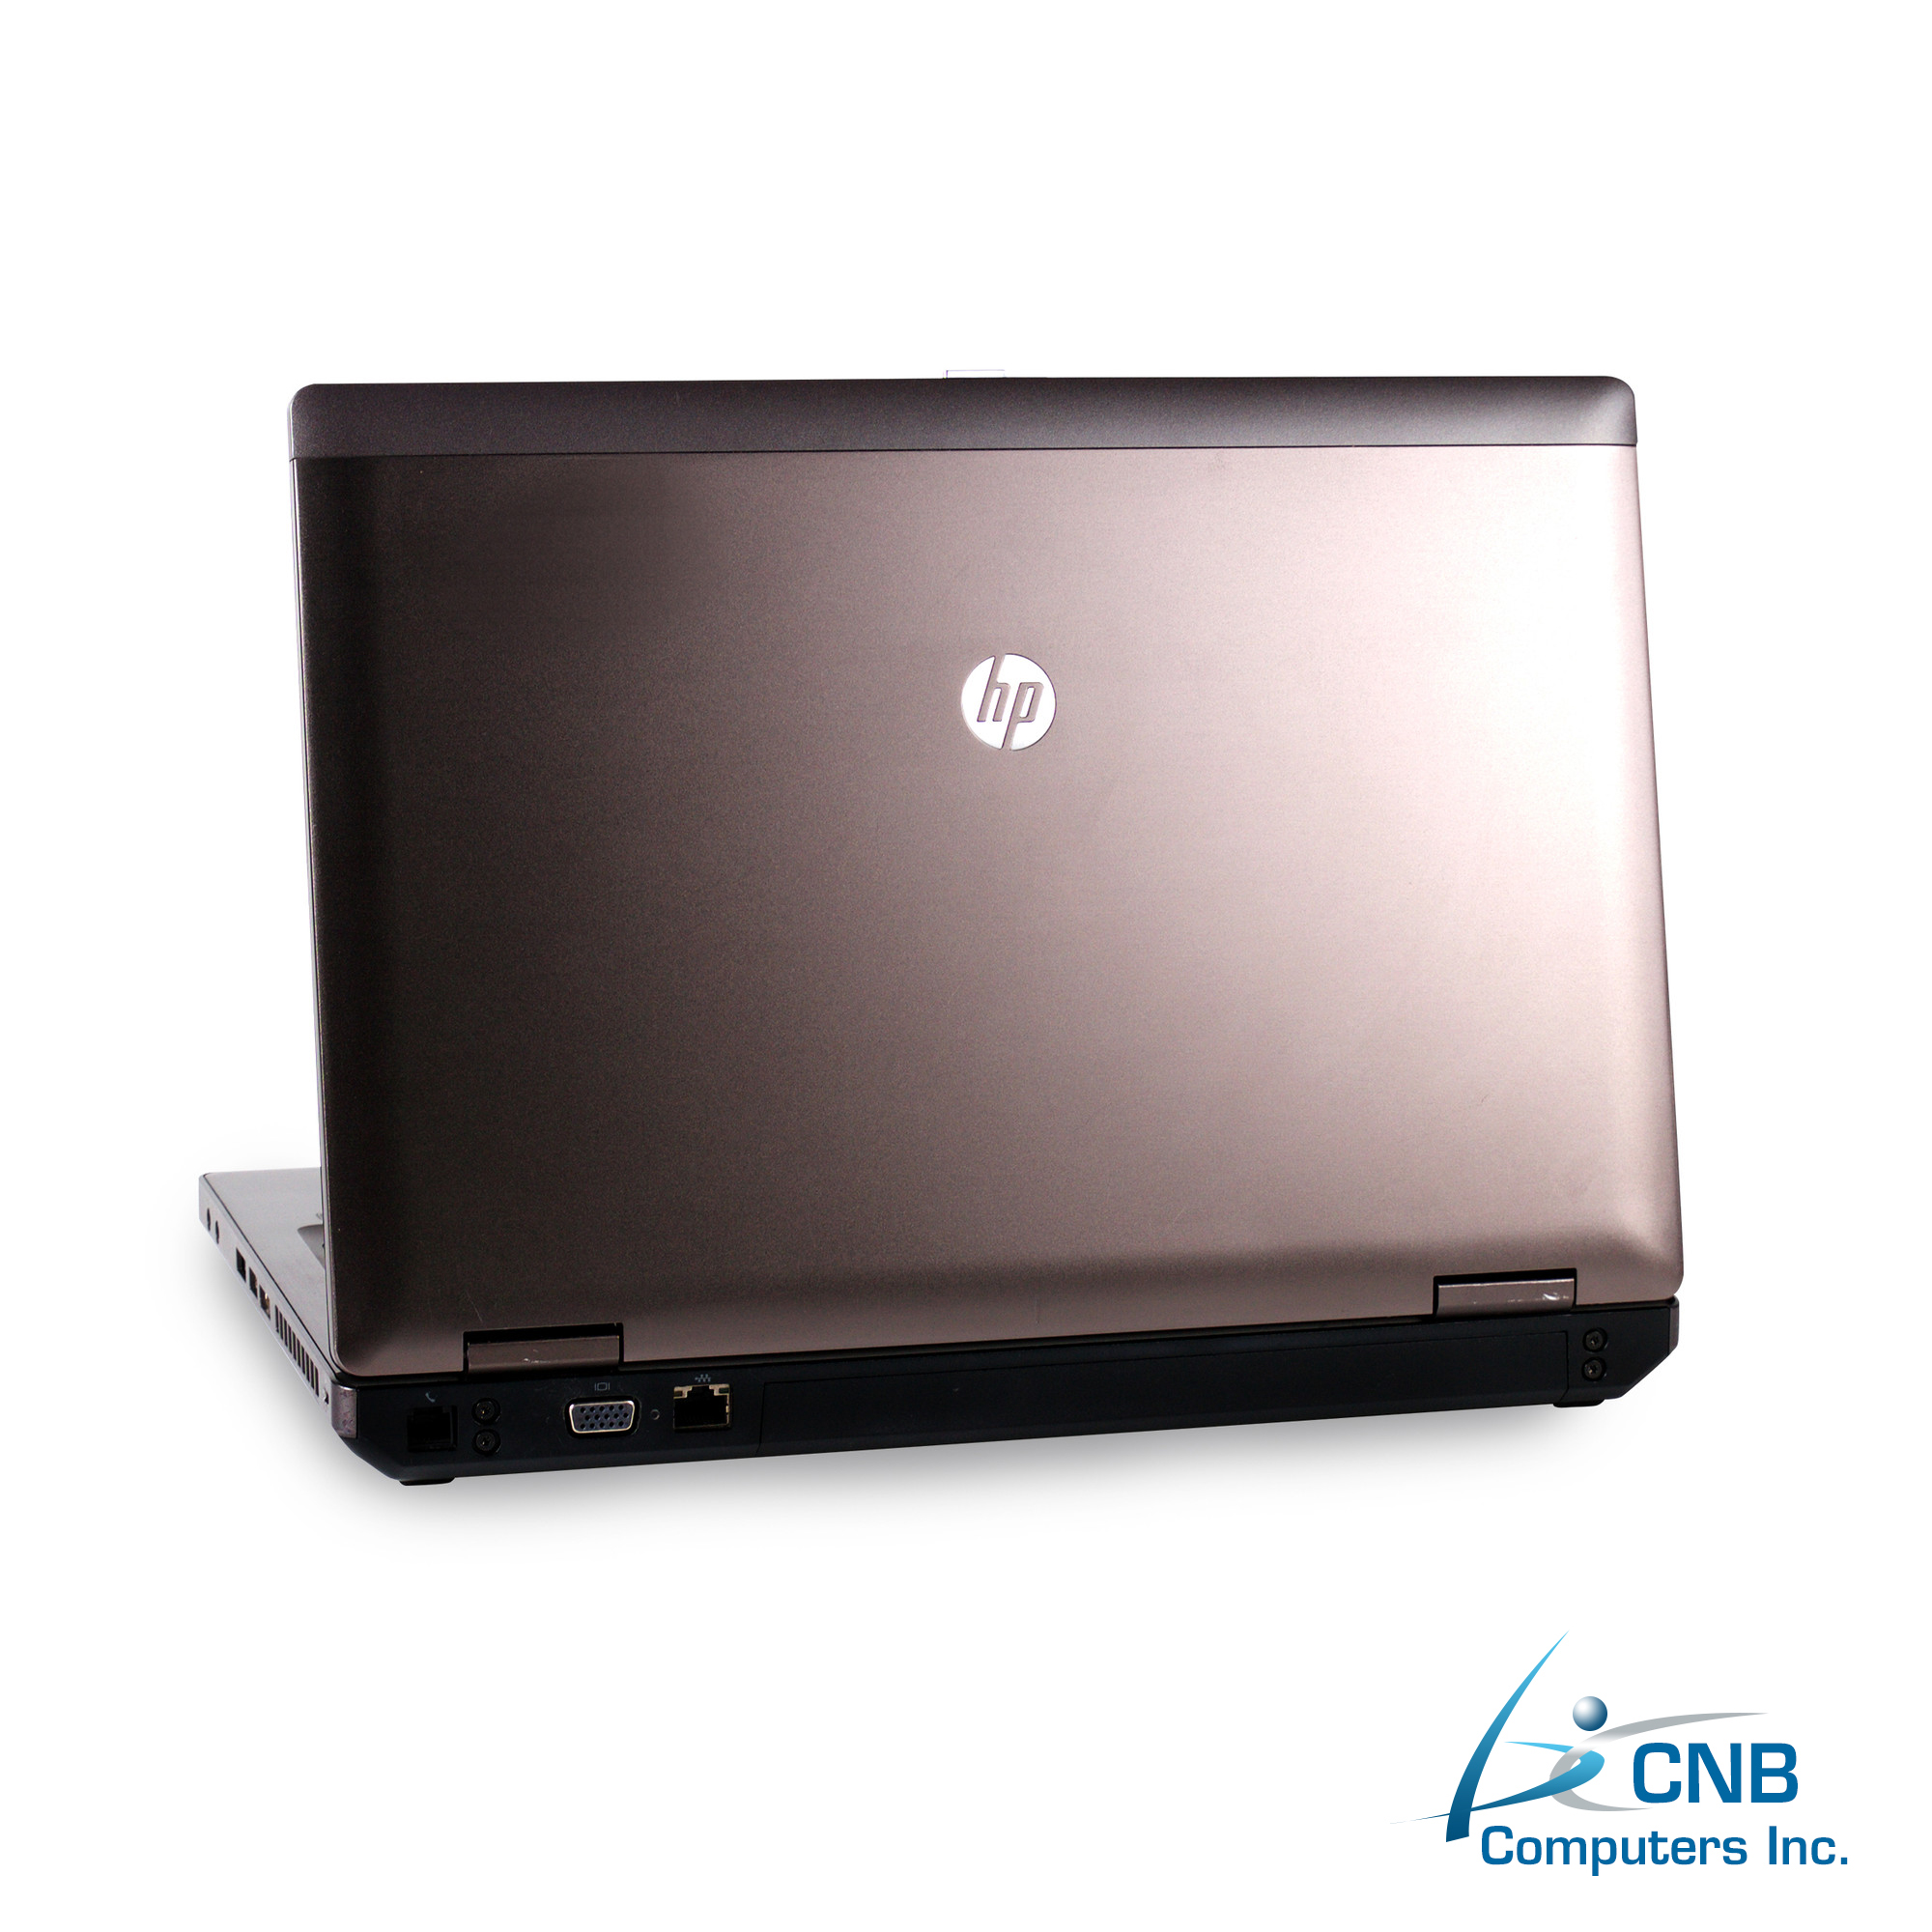 Hp probook 4530s ci3 500gb price in pakistan specifications - Hp Probook 6460b Laptop 4gb 250gb Hdd Intel I5 2520m 2 5ghz Cnb